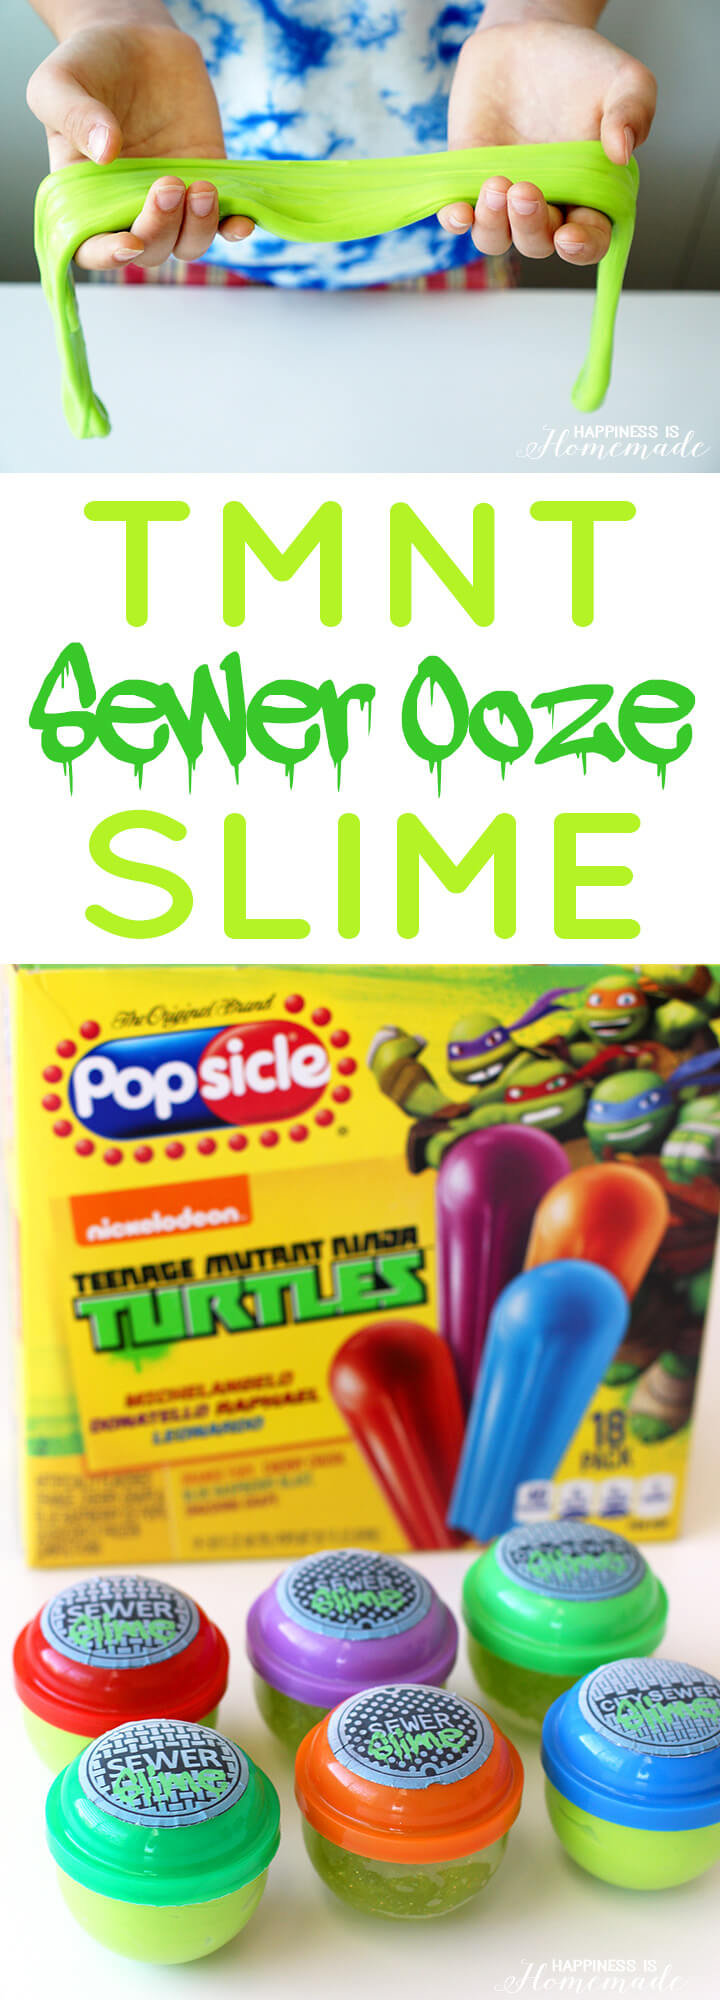 TMNT Sewer Ooze Slime Kids Craft - Teenage Mutant Ninja Turtles